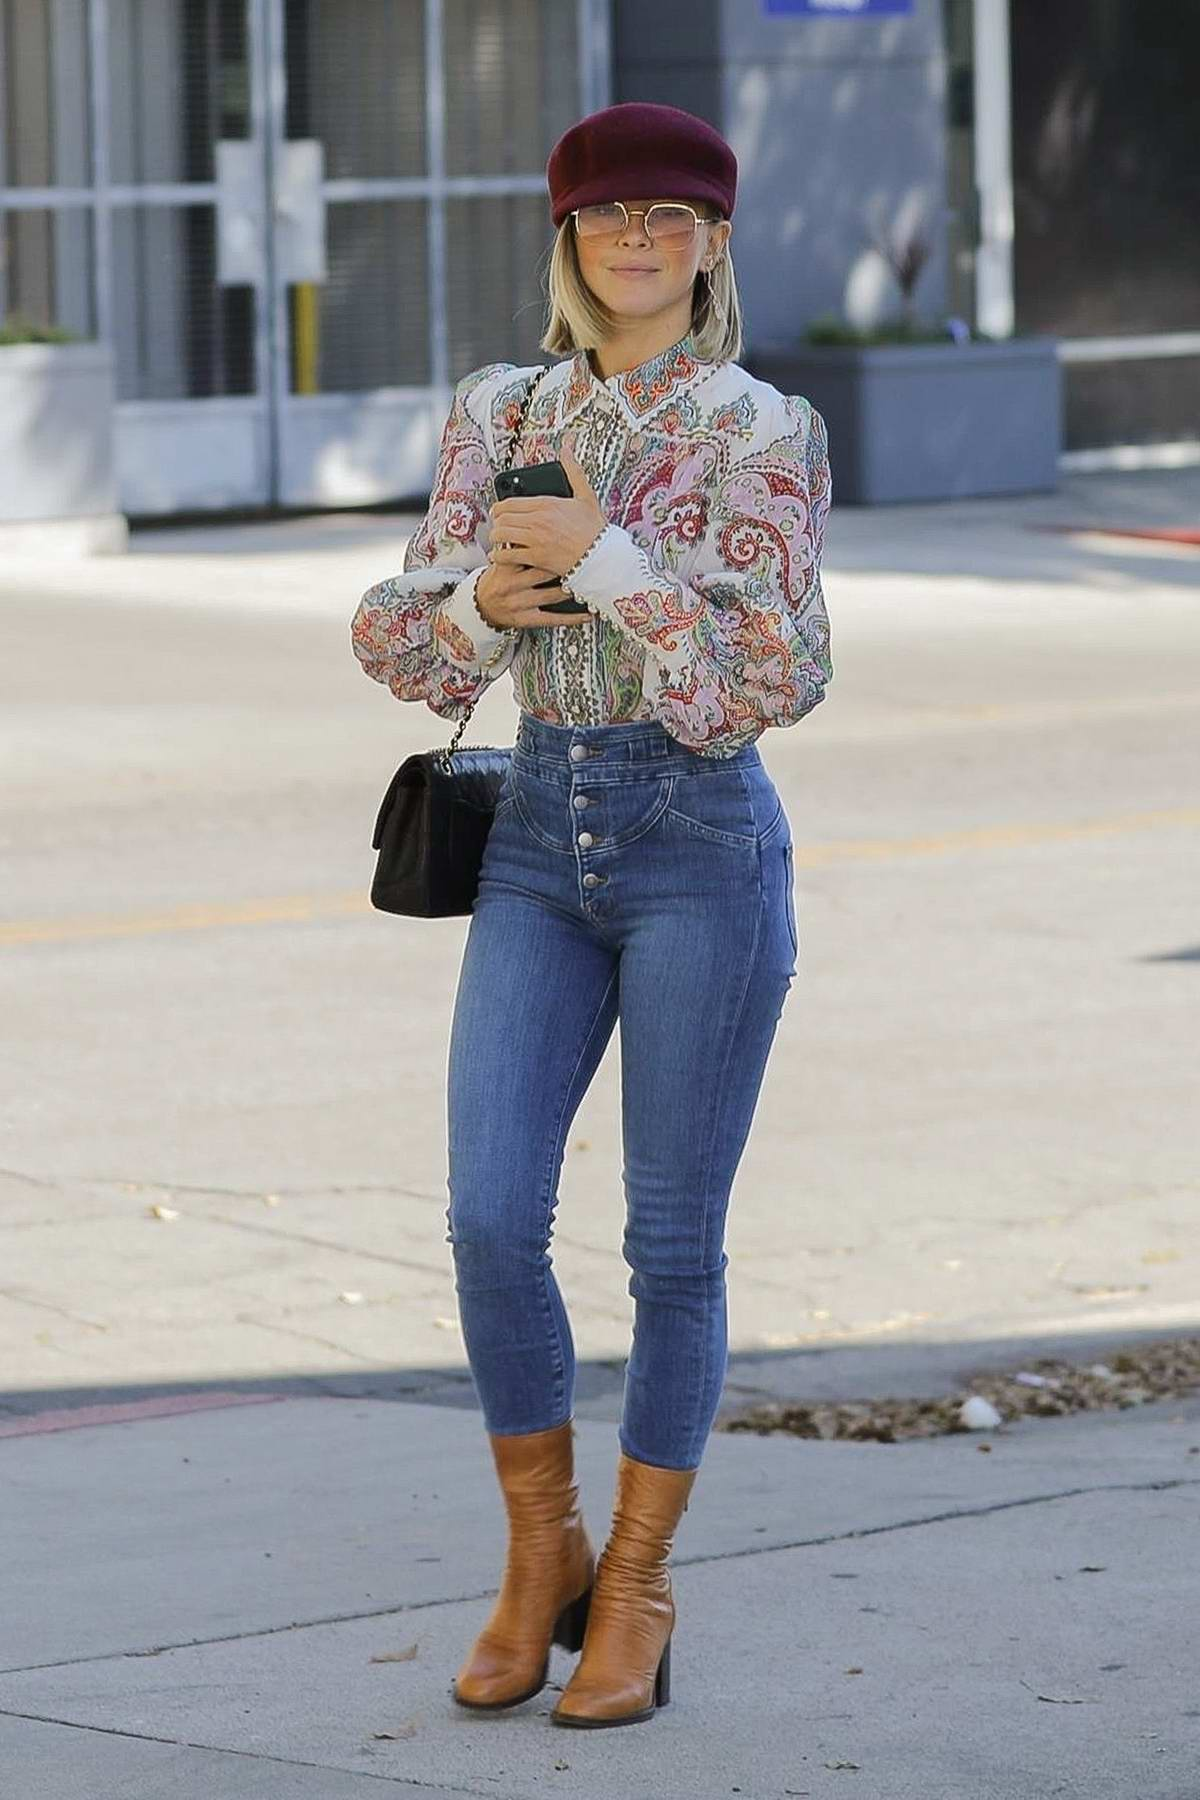 Julianne Hough looks happy during a lunch outing with a friend in Los Angeles